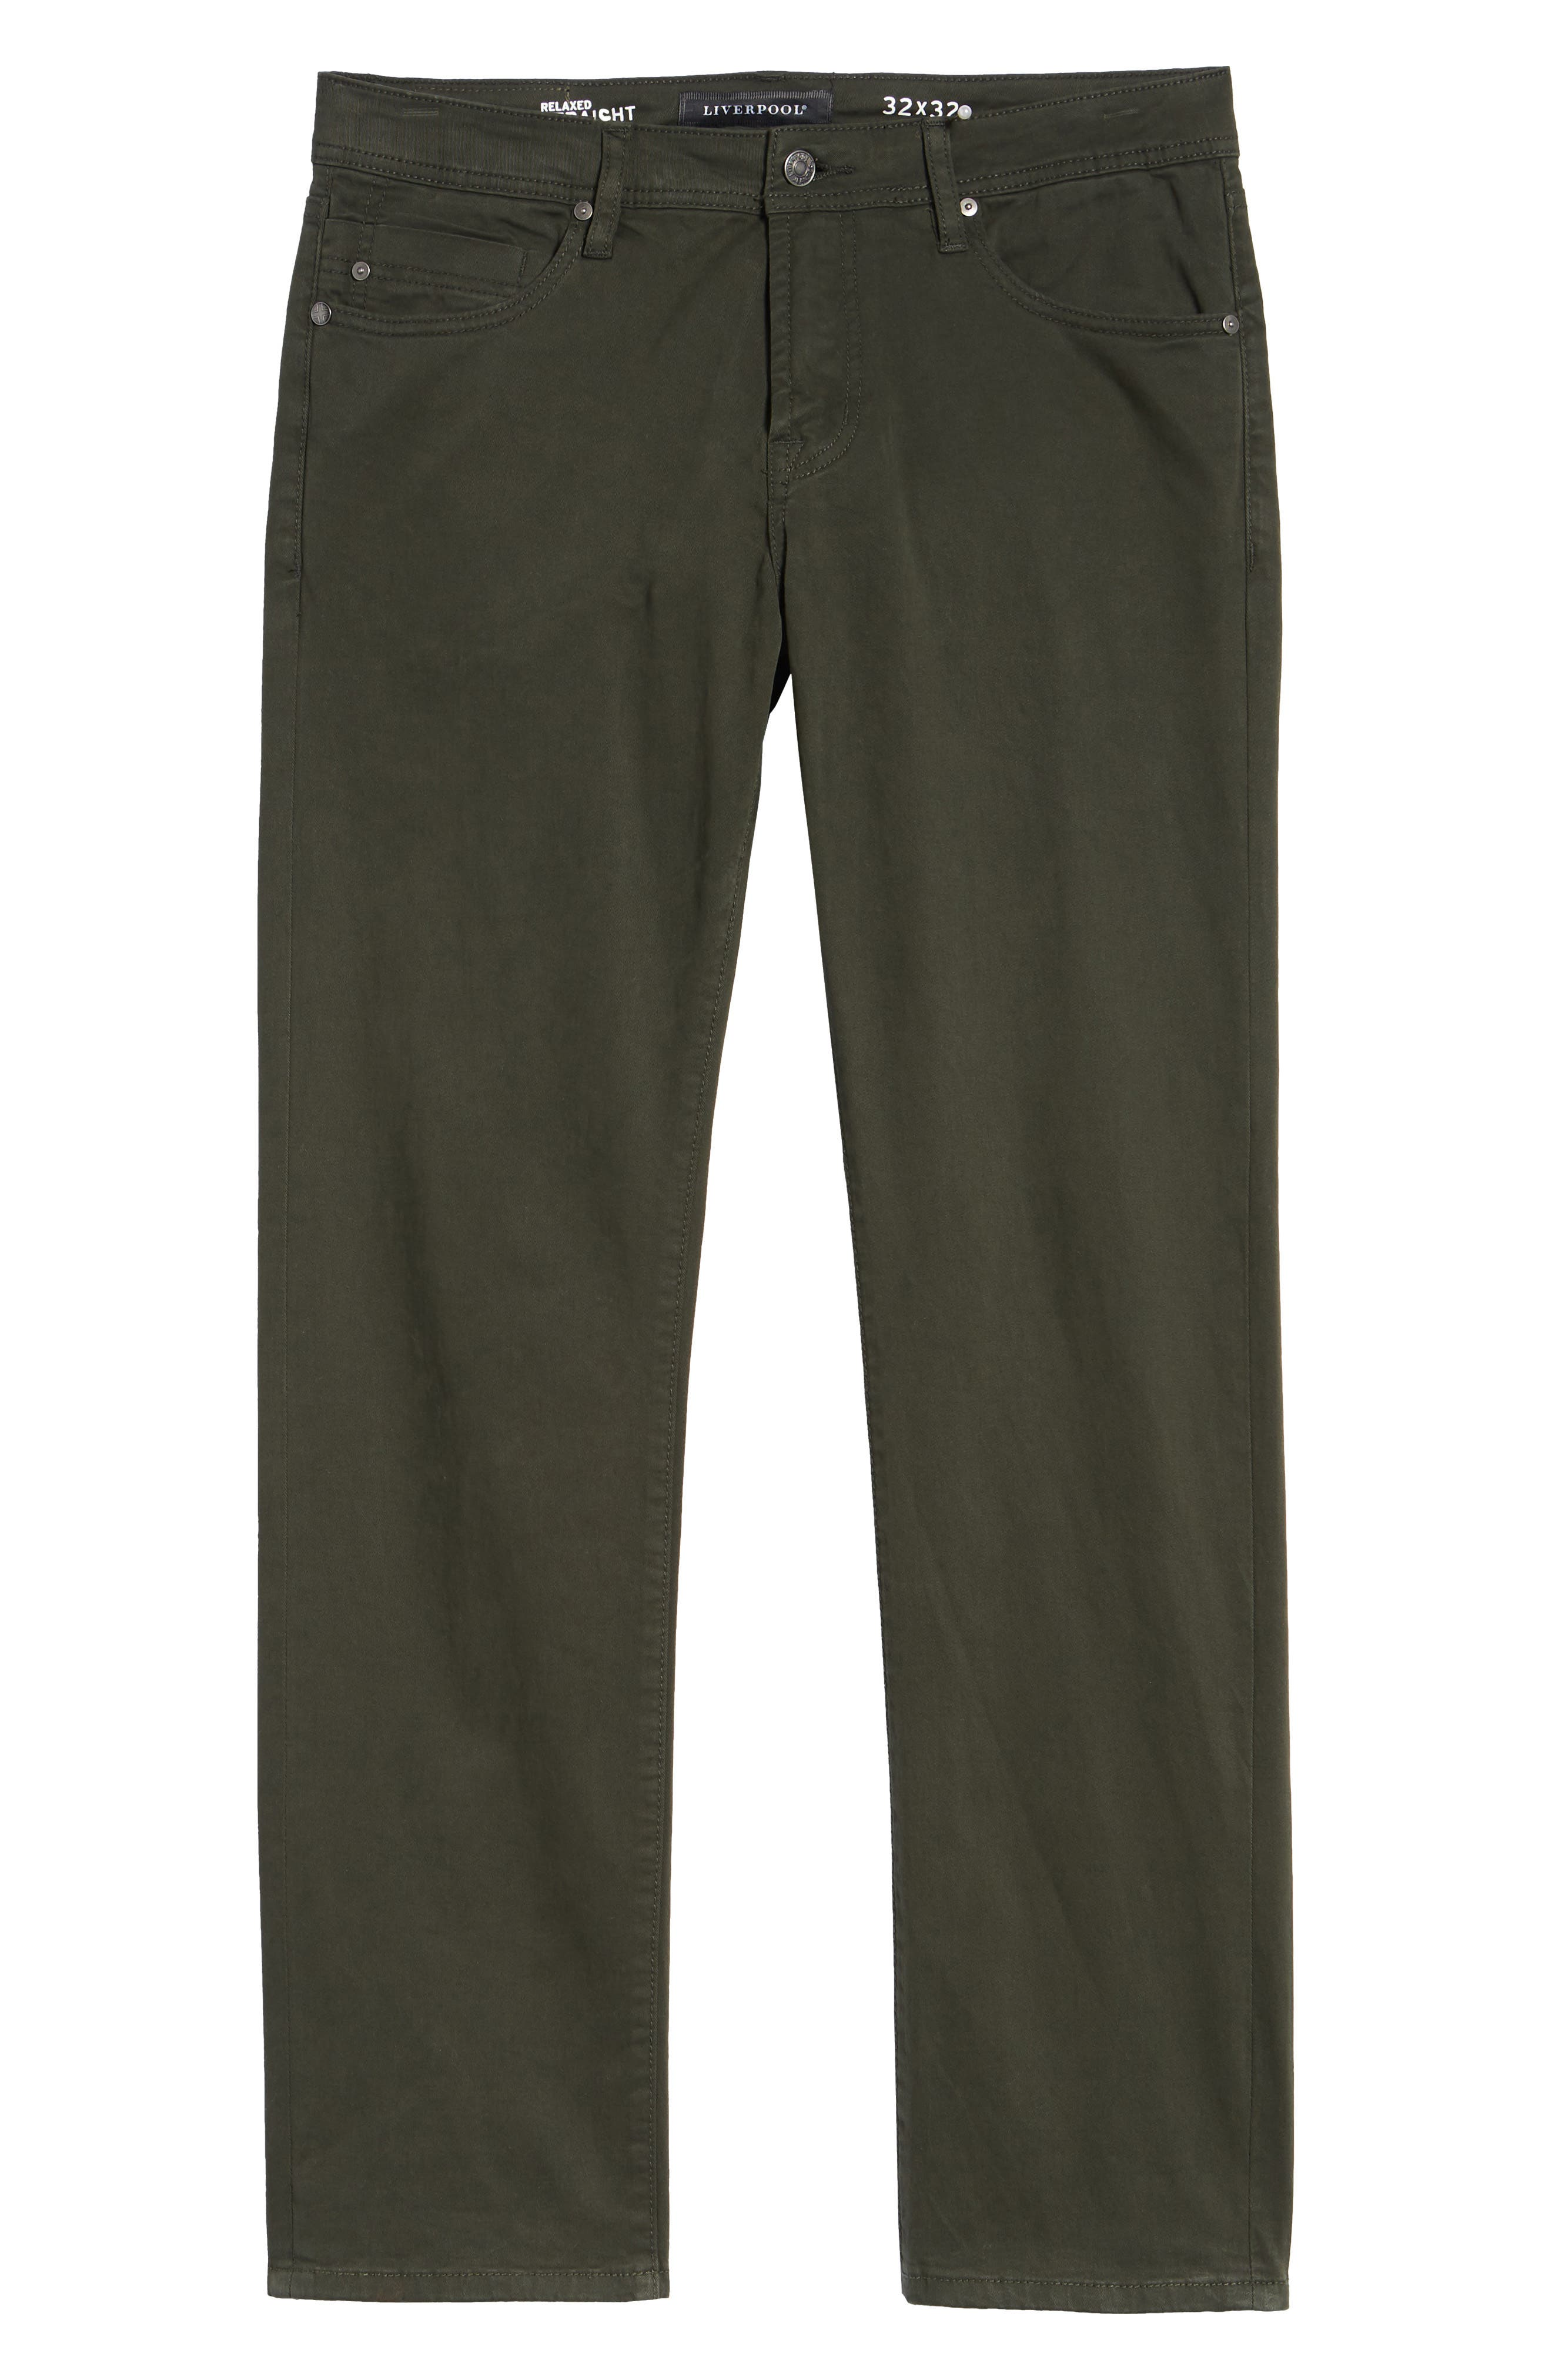 Regent Relaxed Straight Leg Twill Pants,                             Alternate thumbnail 6, color,                             OLIVE MULCH